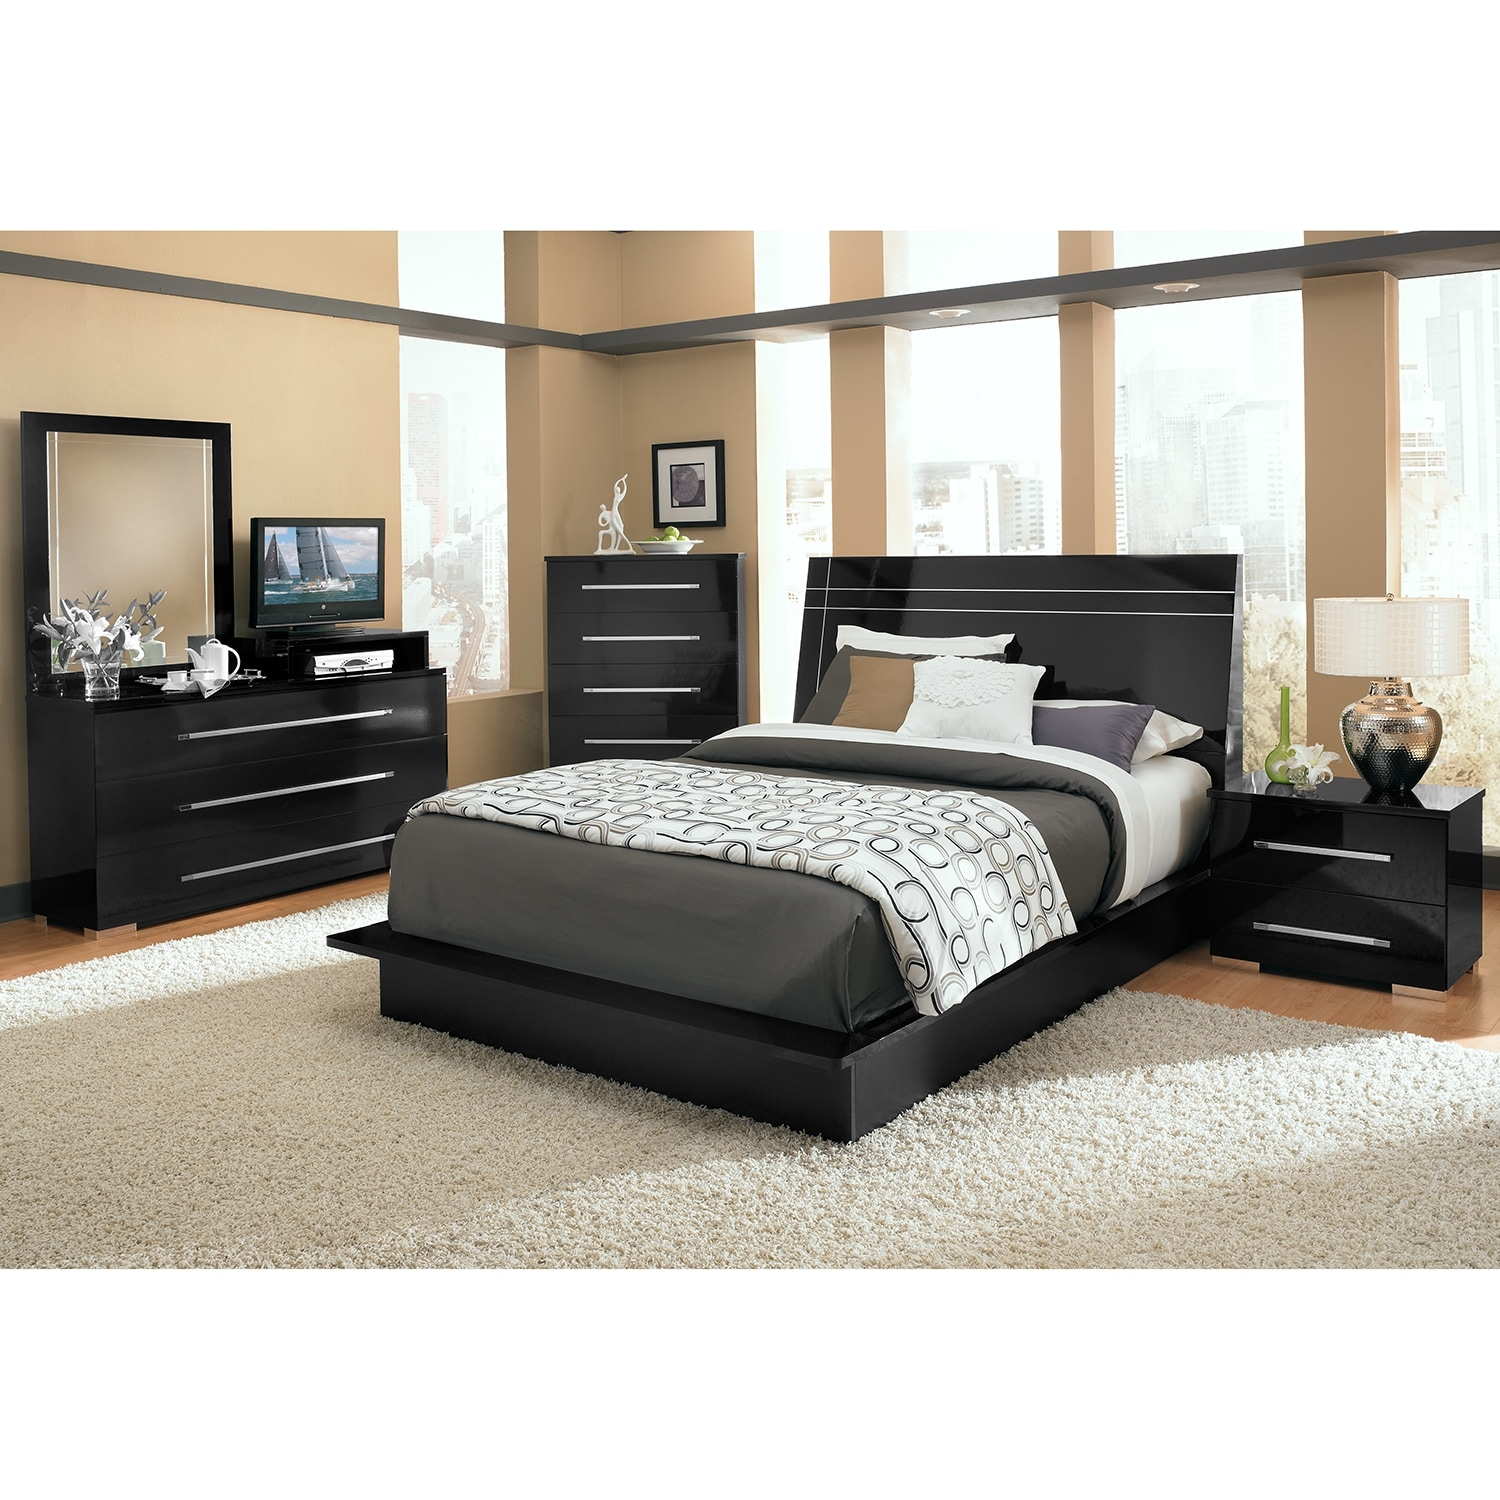 American Furniture Bedroom Sets amazing ideas